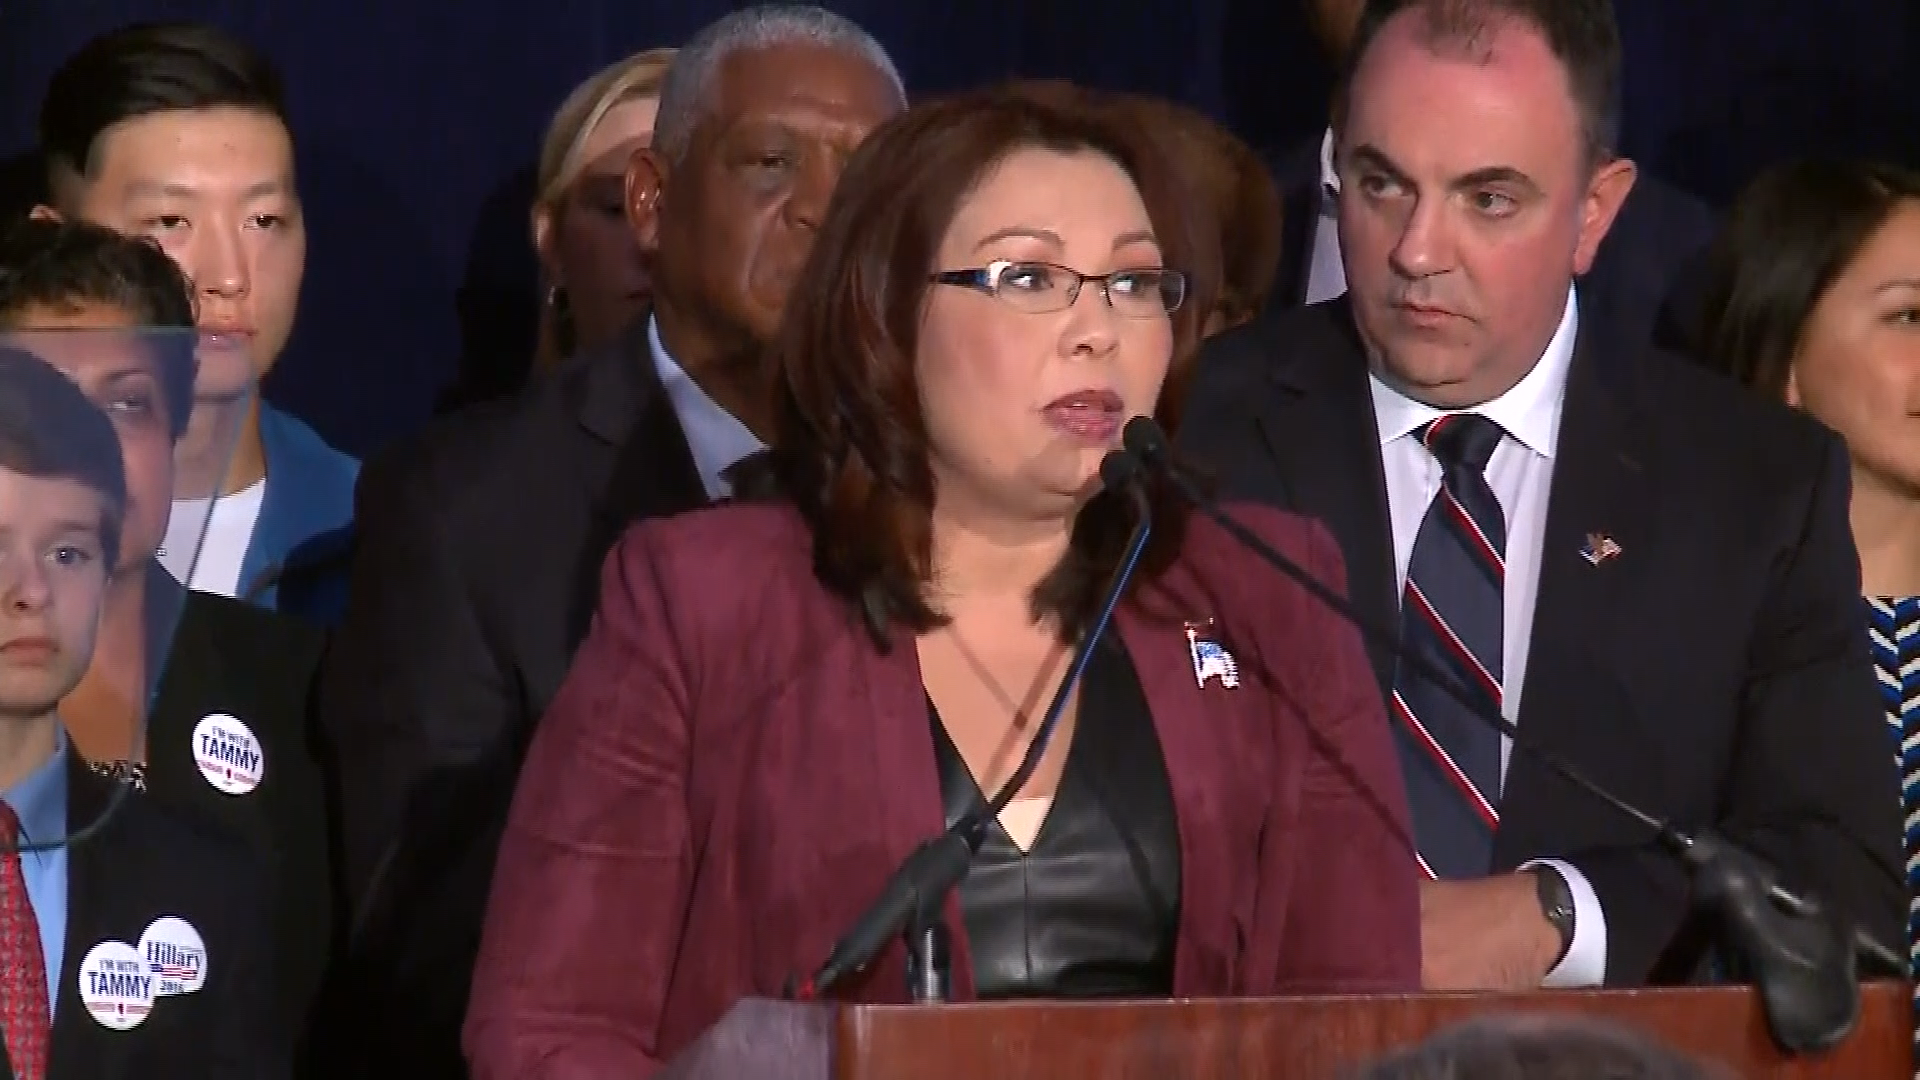 PO-310TU_ELECTION_ IL_ SENATE_TAMMY DUCKWORTH PLEDGE_WMBD0649_174.mp4_00.00.01.29_1478686073151.png